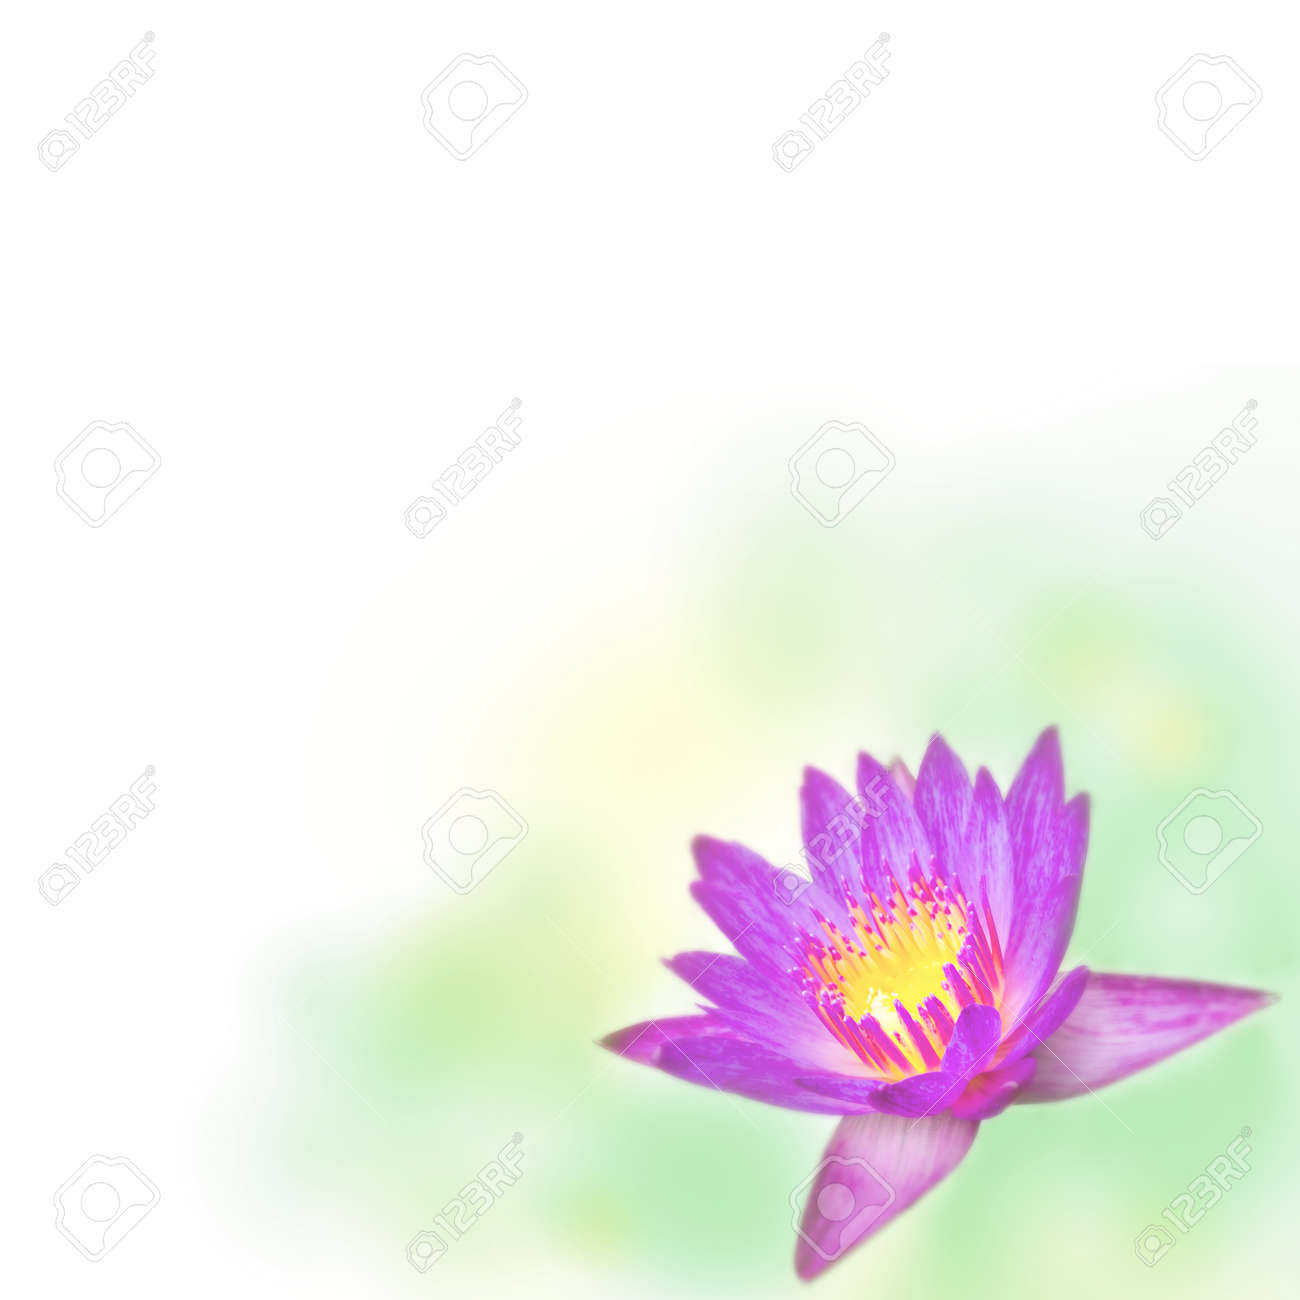 Lotus flower design expandable blank template border stock photo lotus flower design expandable blank template border stock photo 14856467 pronofoot35fo Choice Image